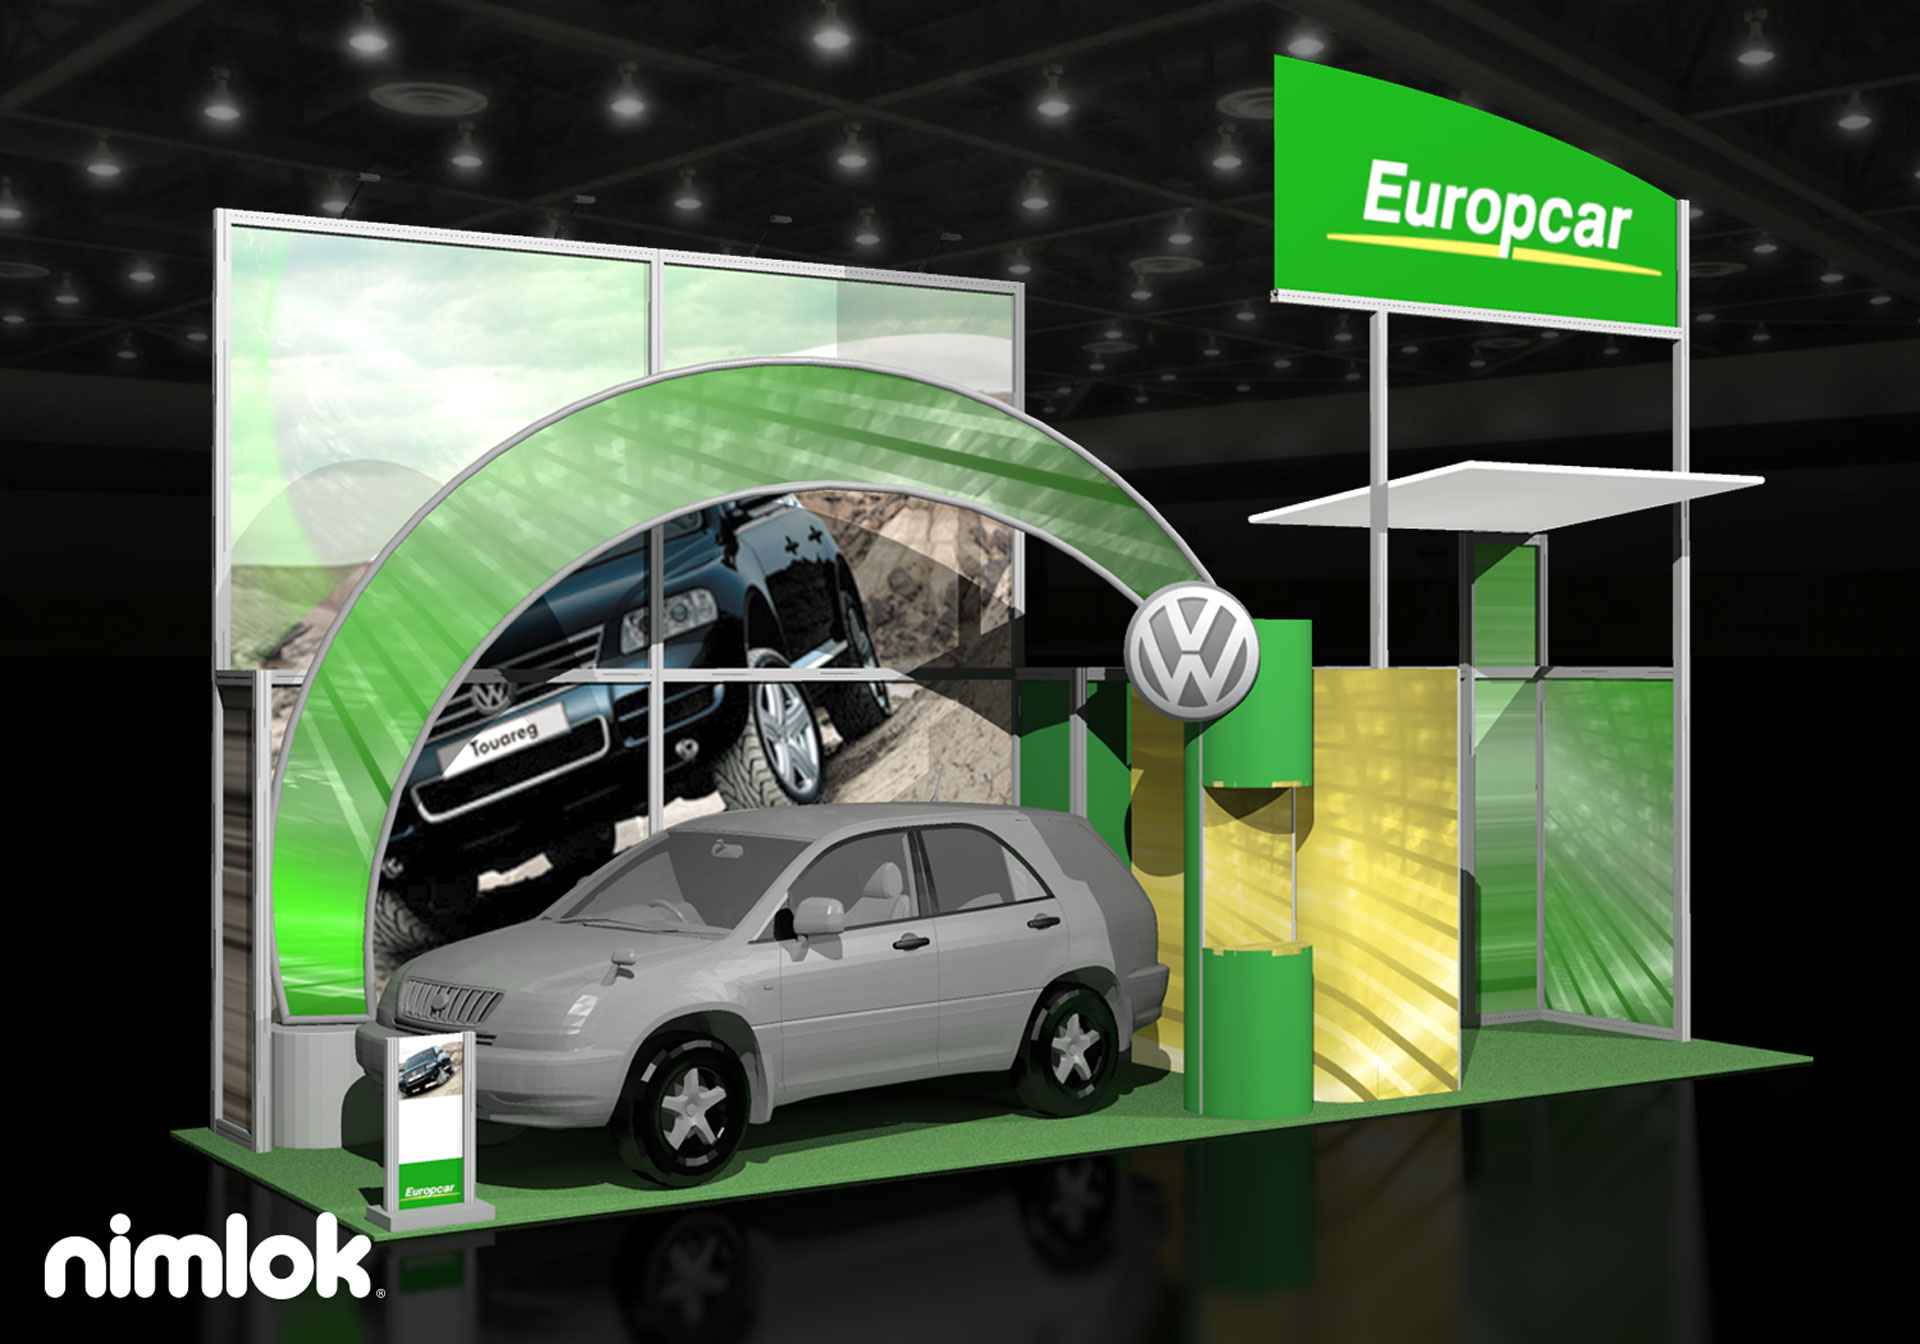 Europcar - 10x30 - trade show exhibit